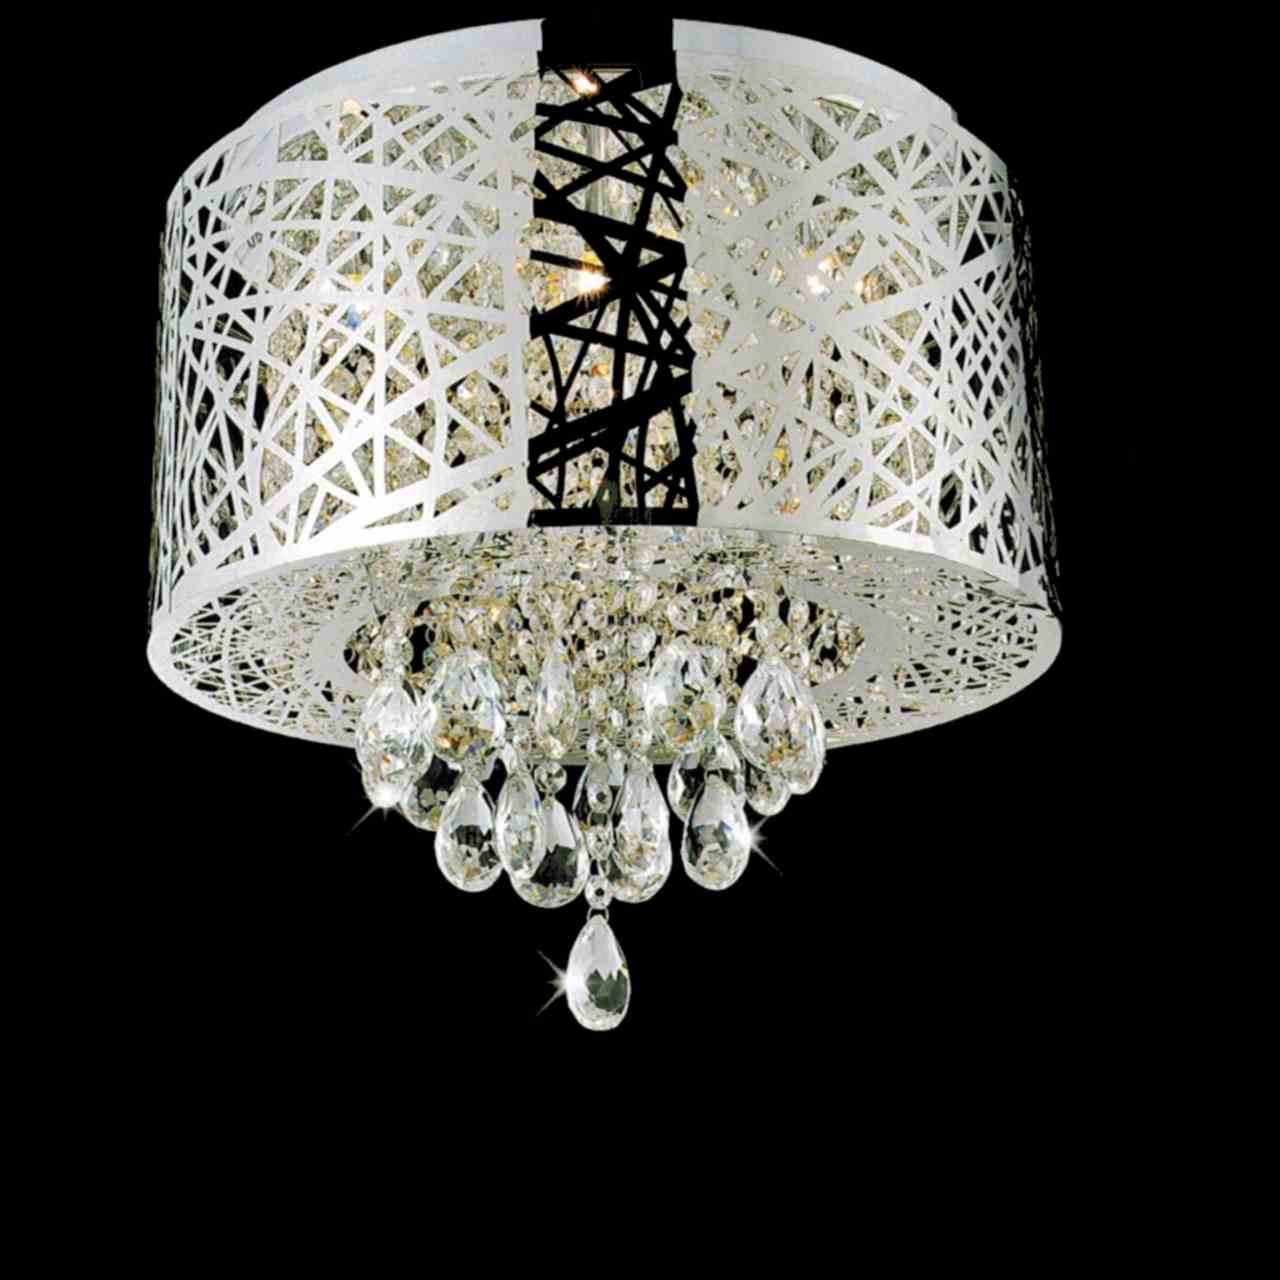 Brizzo lighting stores 16 web modern laser cut drum shade crystal picture of 16 web modern laser cut drum shade crystal round flush mount chandelier stainless aloadofball